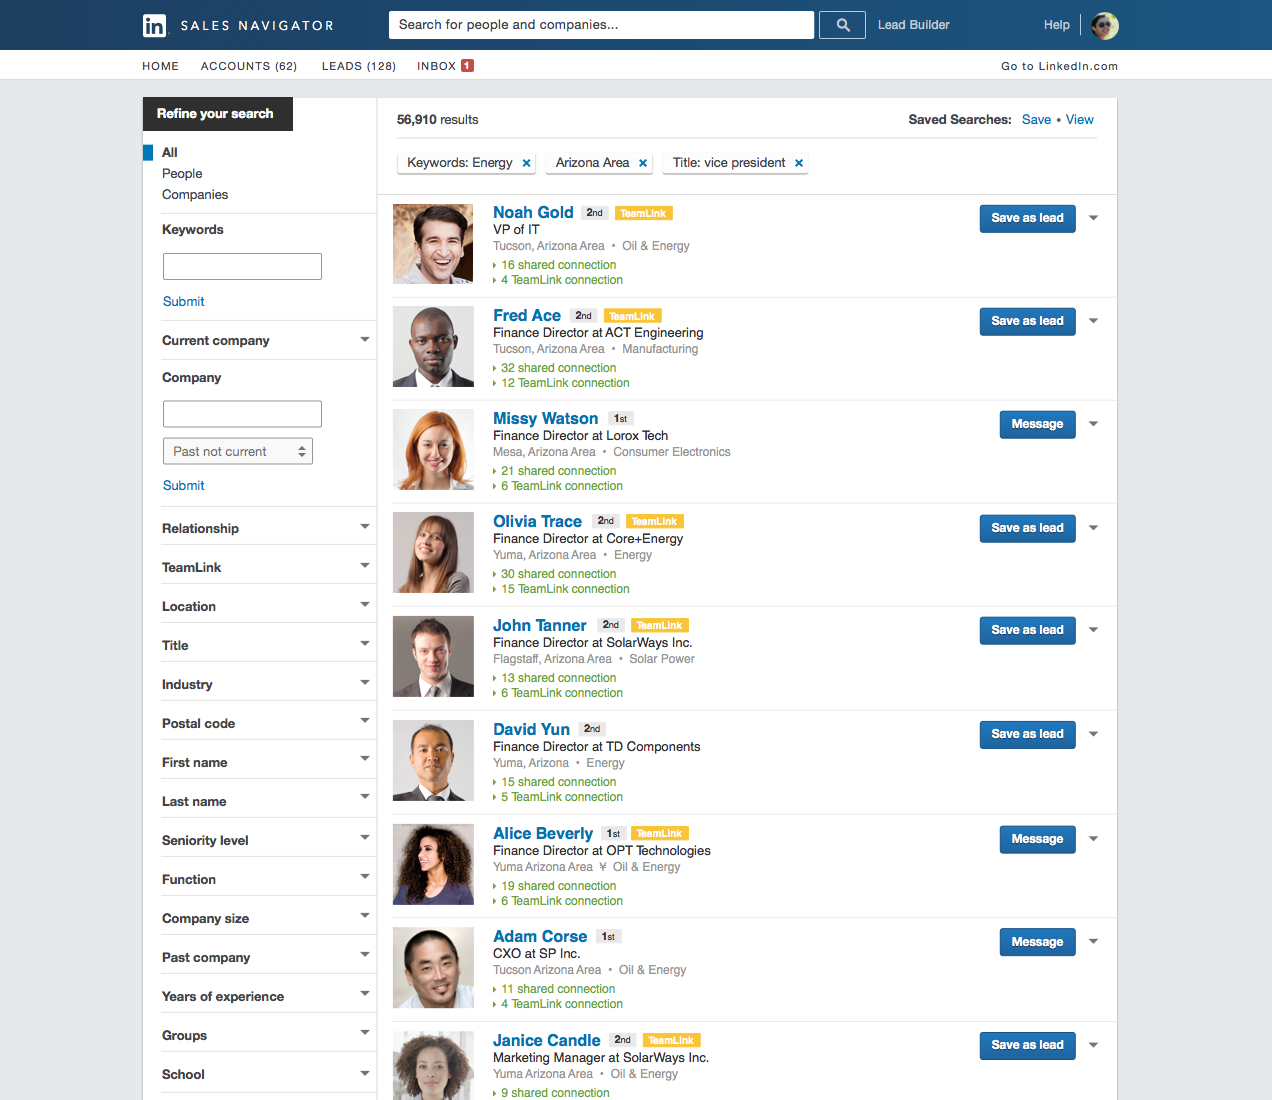 LinkedIn Sales Navigator Demo - Advanced Search